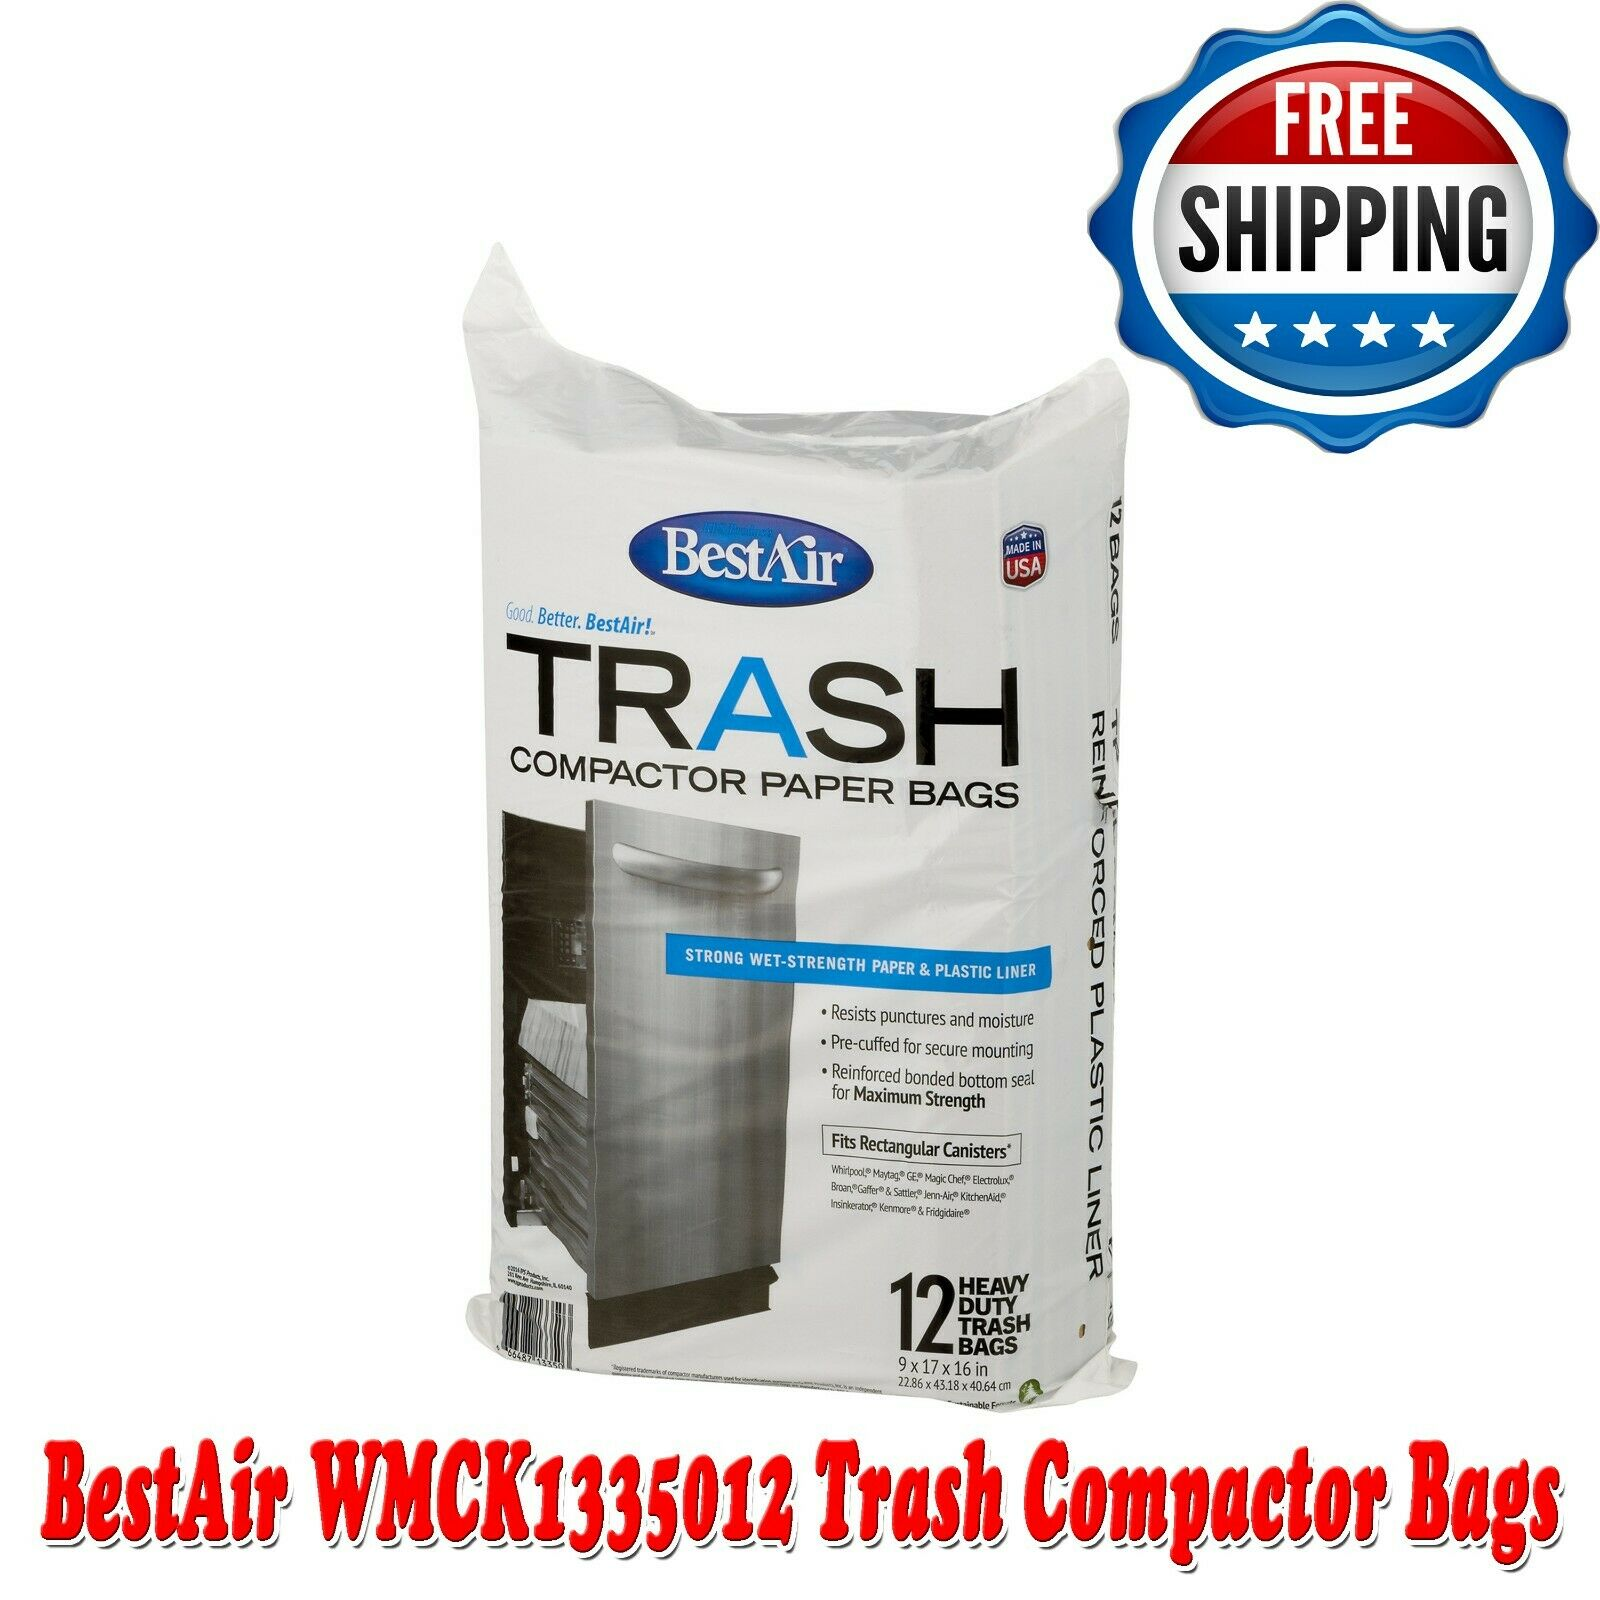 trash compactor bags 12 bags strong wet